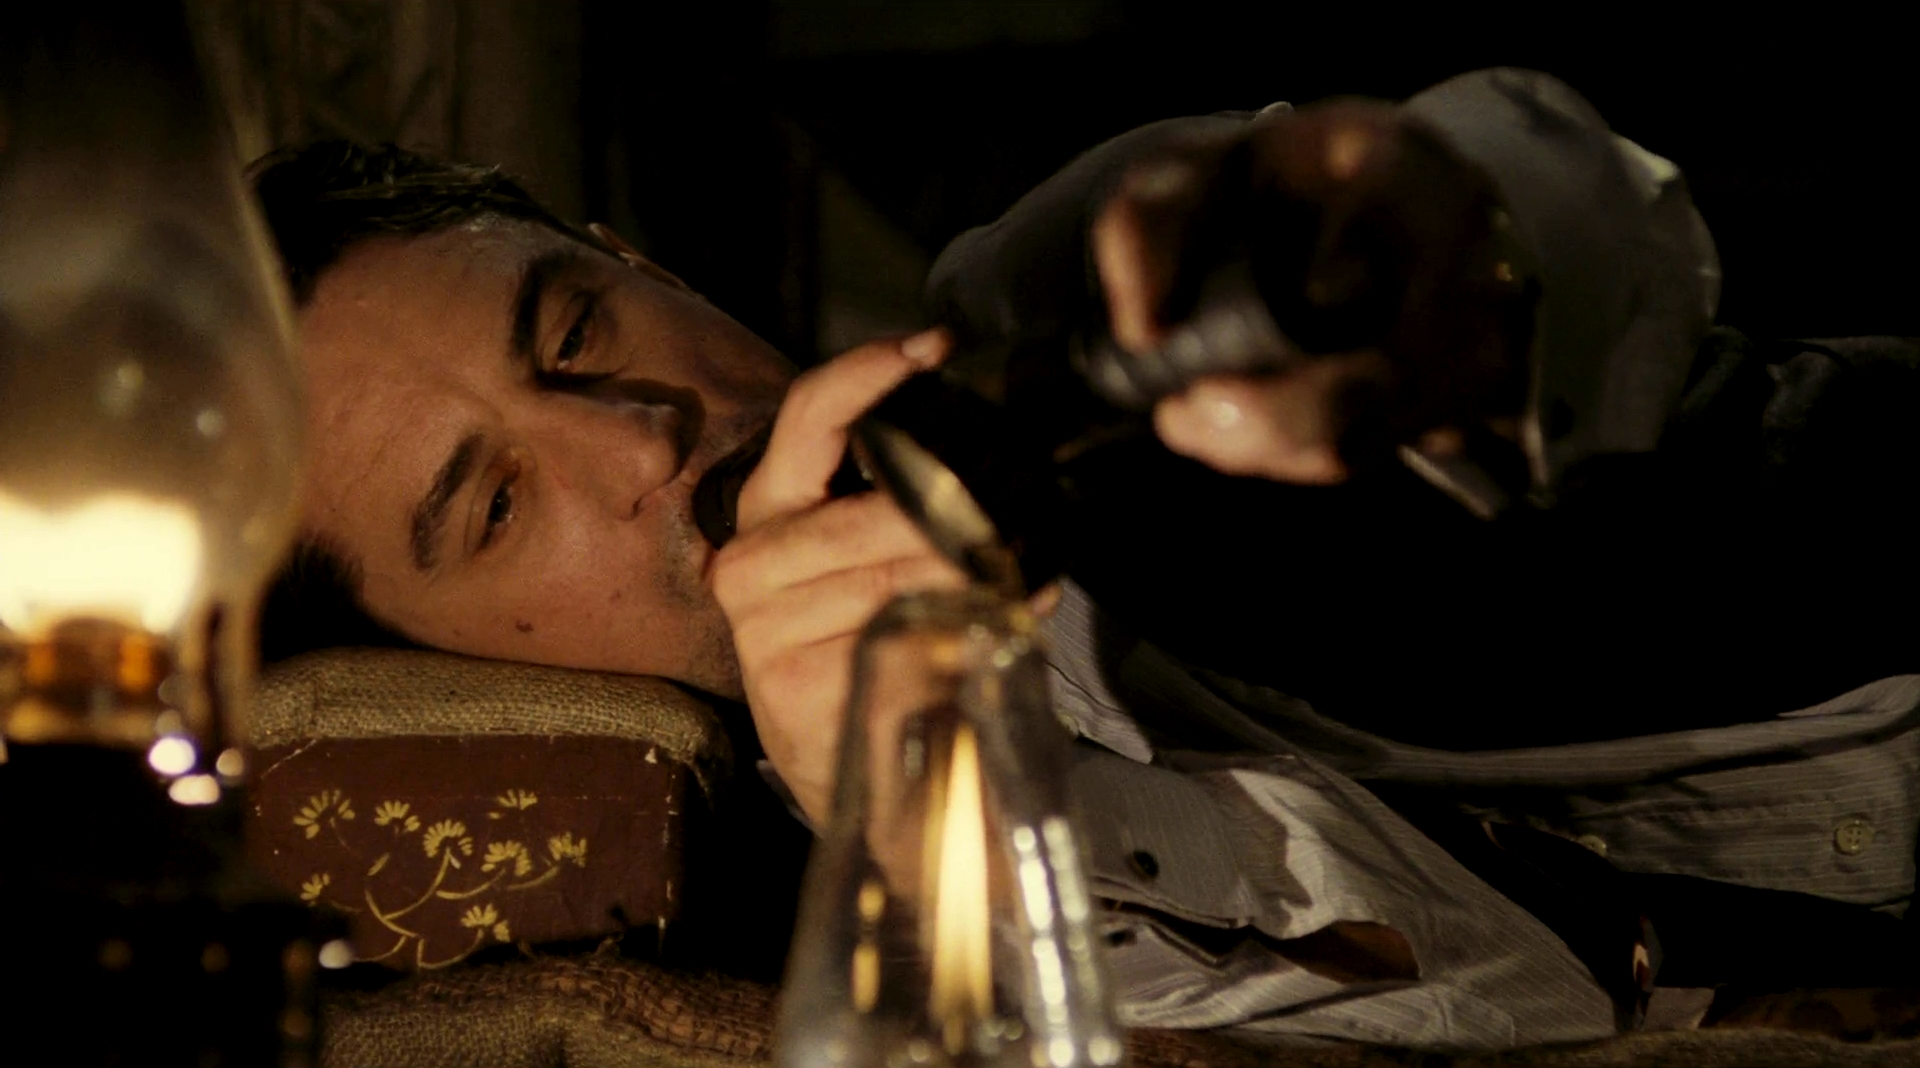 Noodles (Robert De Niro) takes a long draw on the pipe in the Chinese opium den